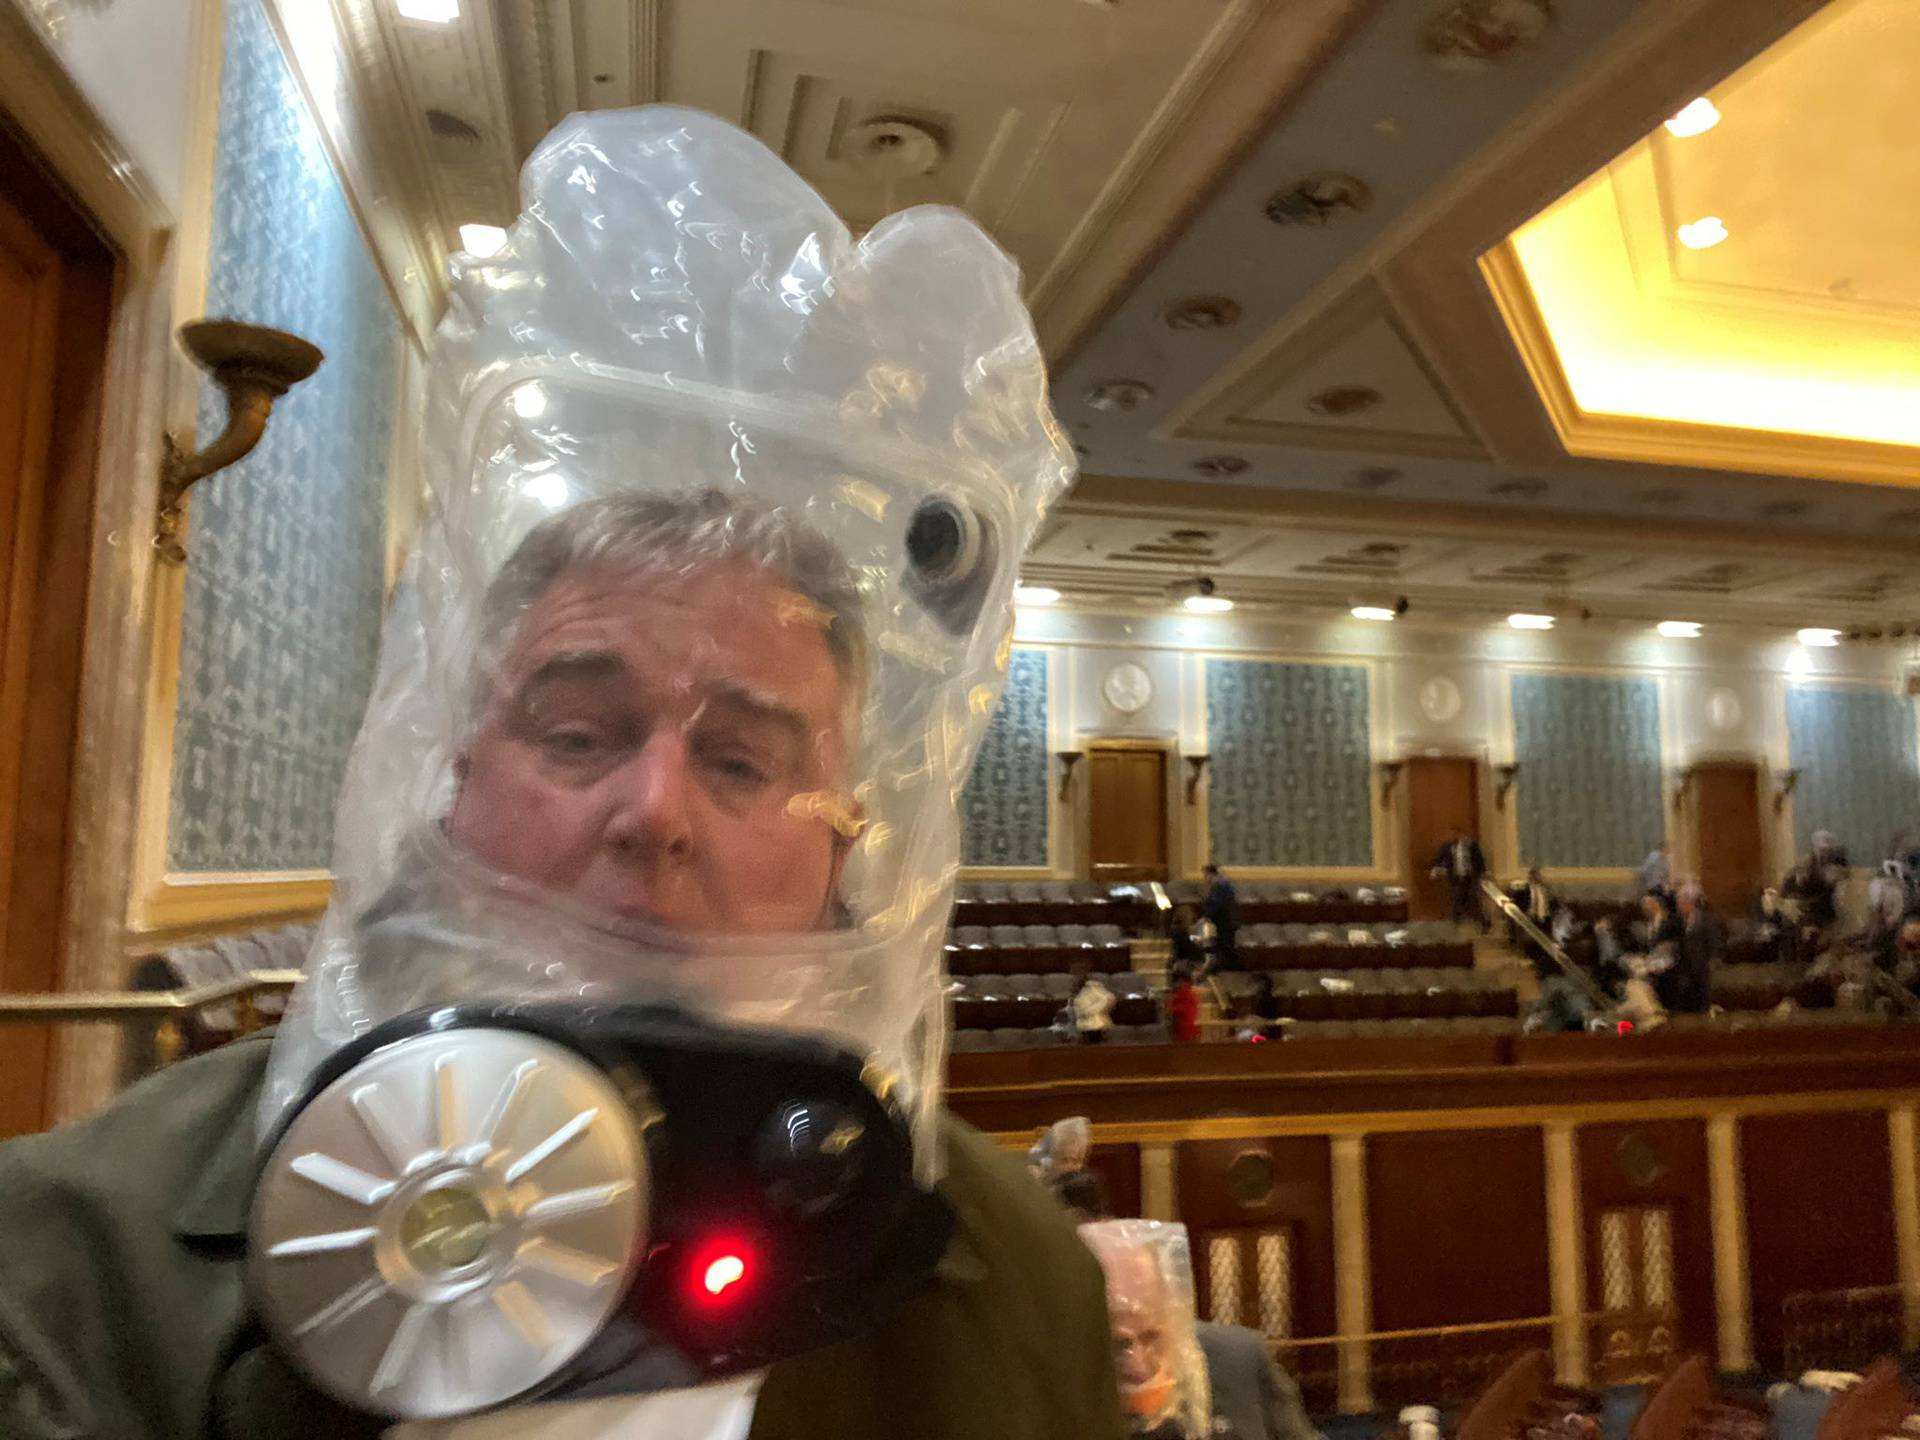 Rep. David Trone wears a gas mask inside the U.S. Capitol in Washington